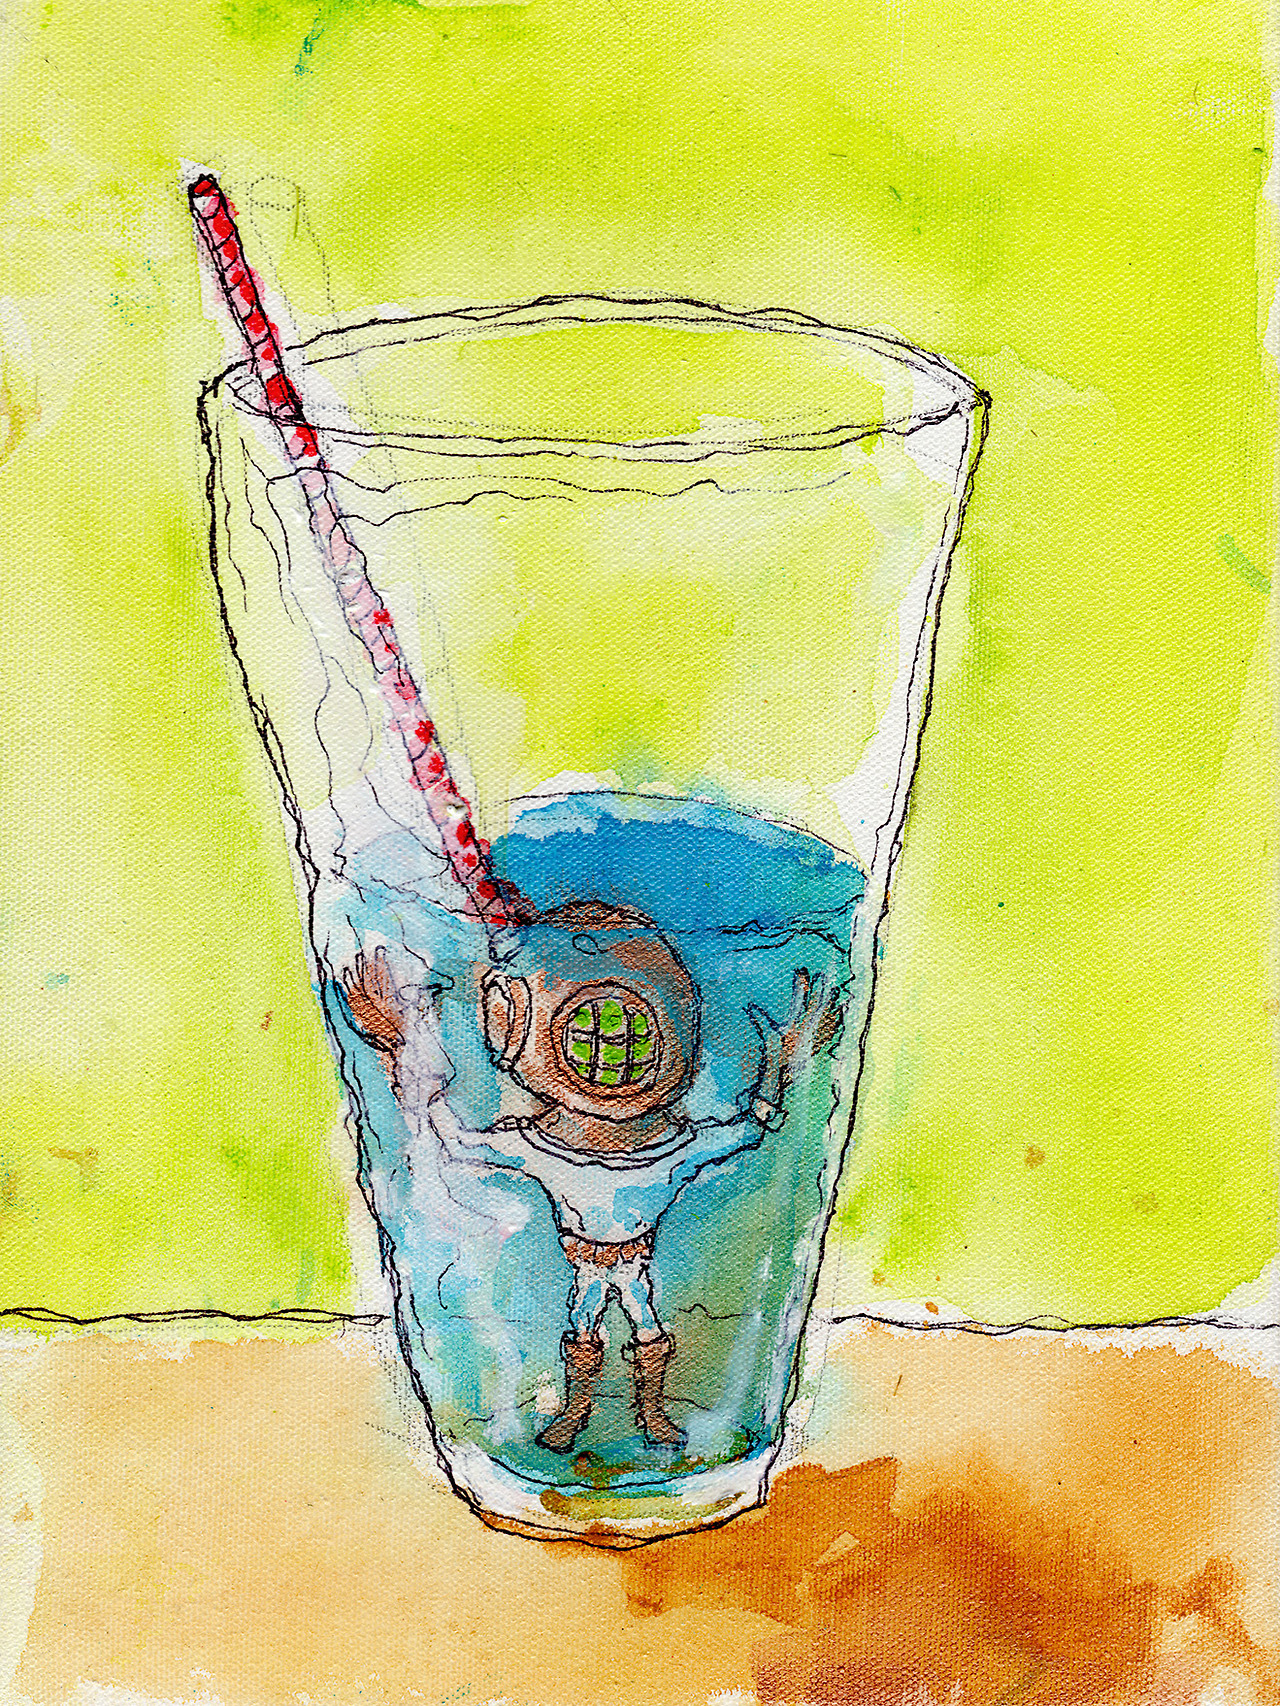 "4/16/13 -  Lil Diver in a Half-Full, Half-Empty Situation .   Taking a break from the video game action.   9"" x 12"" Acrylic paint, sharpie, pencil, polyurethane on canvas.   Available to purchase here:  http://taylorwinder.bigcartel.com    Prints available here:  http://society6.com/taylorwinder"